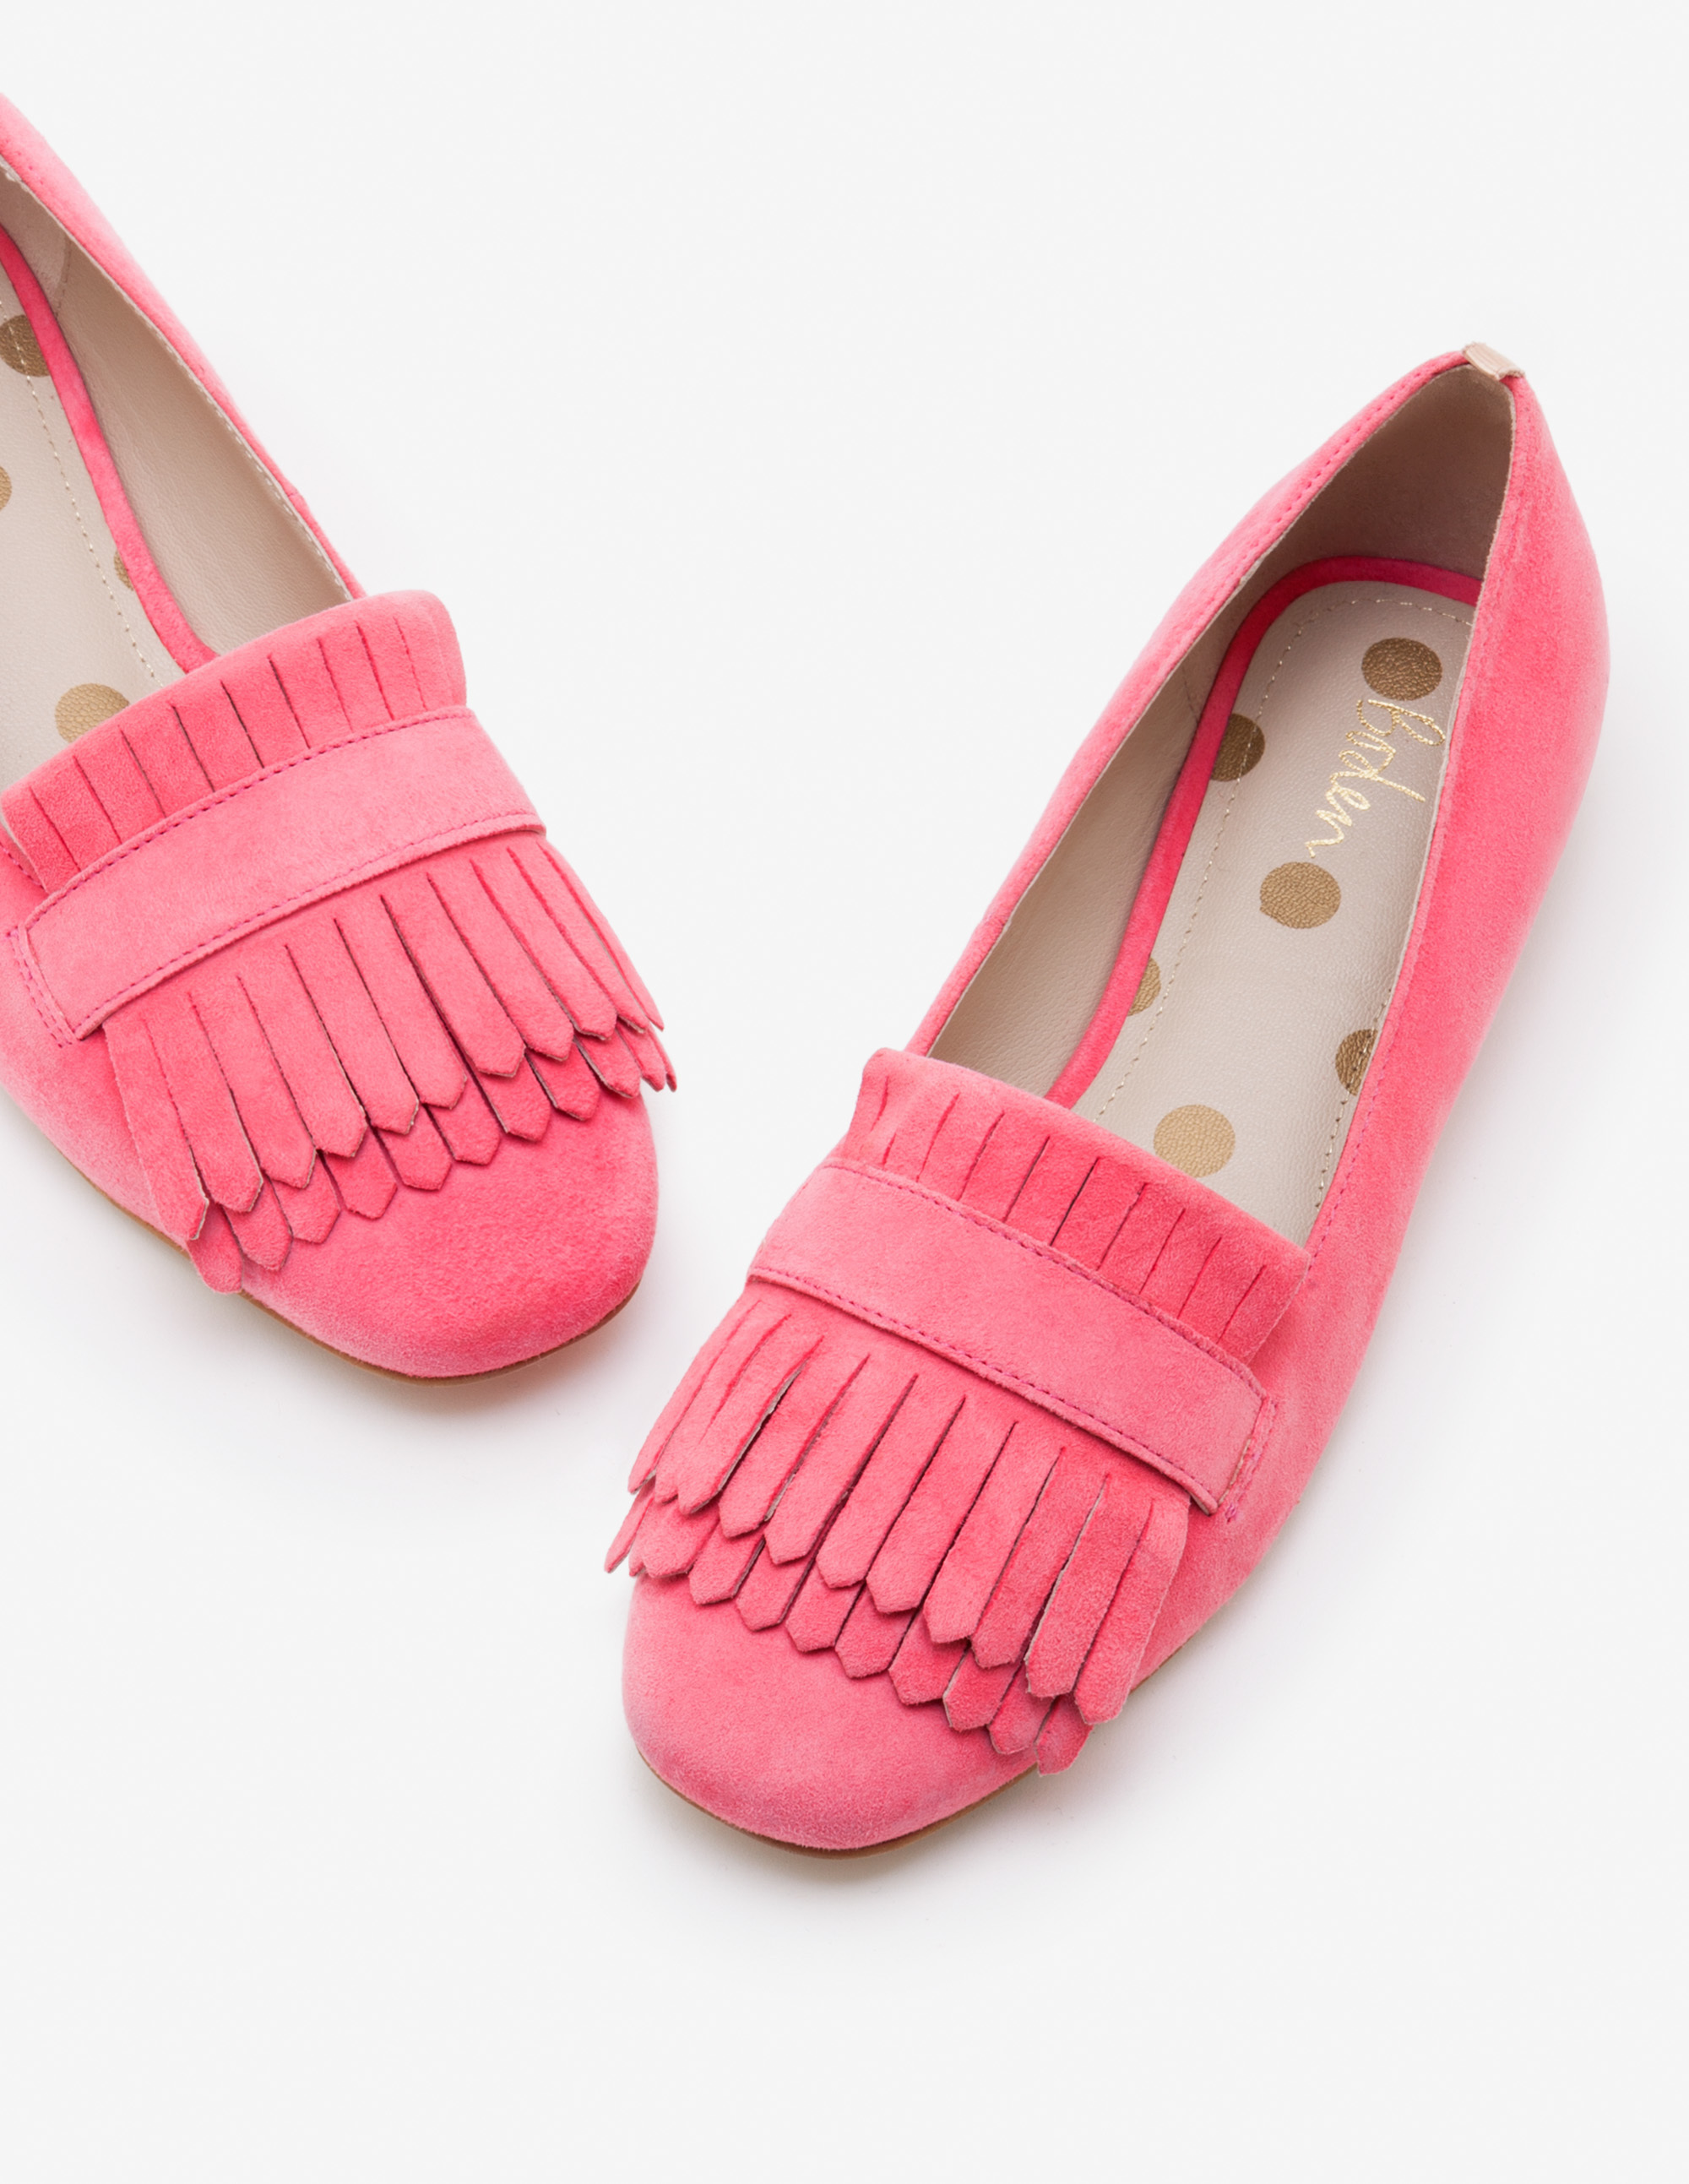 boden-loafers